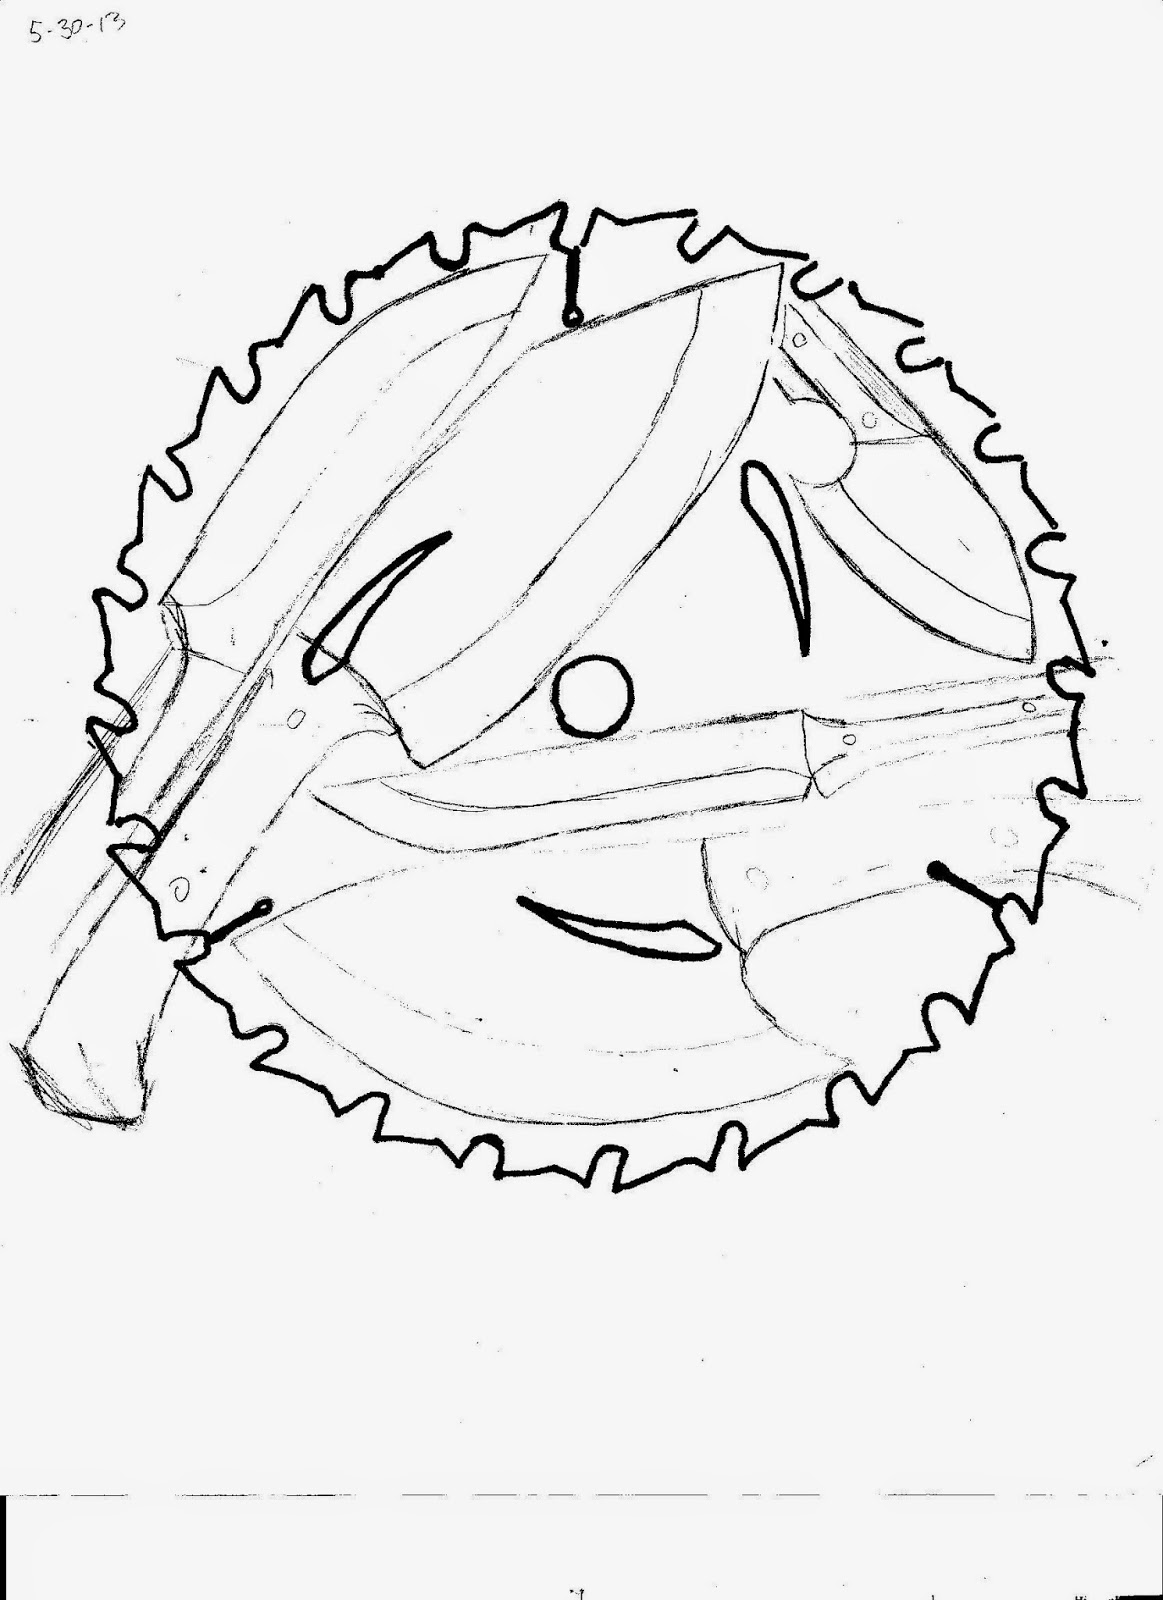 Remarkable Saw Blade Drawing At Getdrawings Com Free For Personal Use Saw Wiring Cloud Brecesaoduqqnet